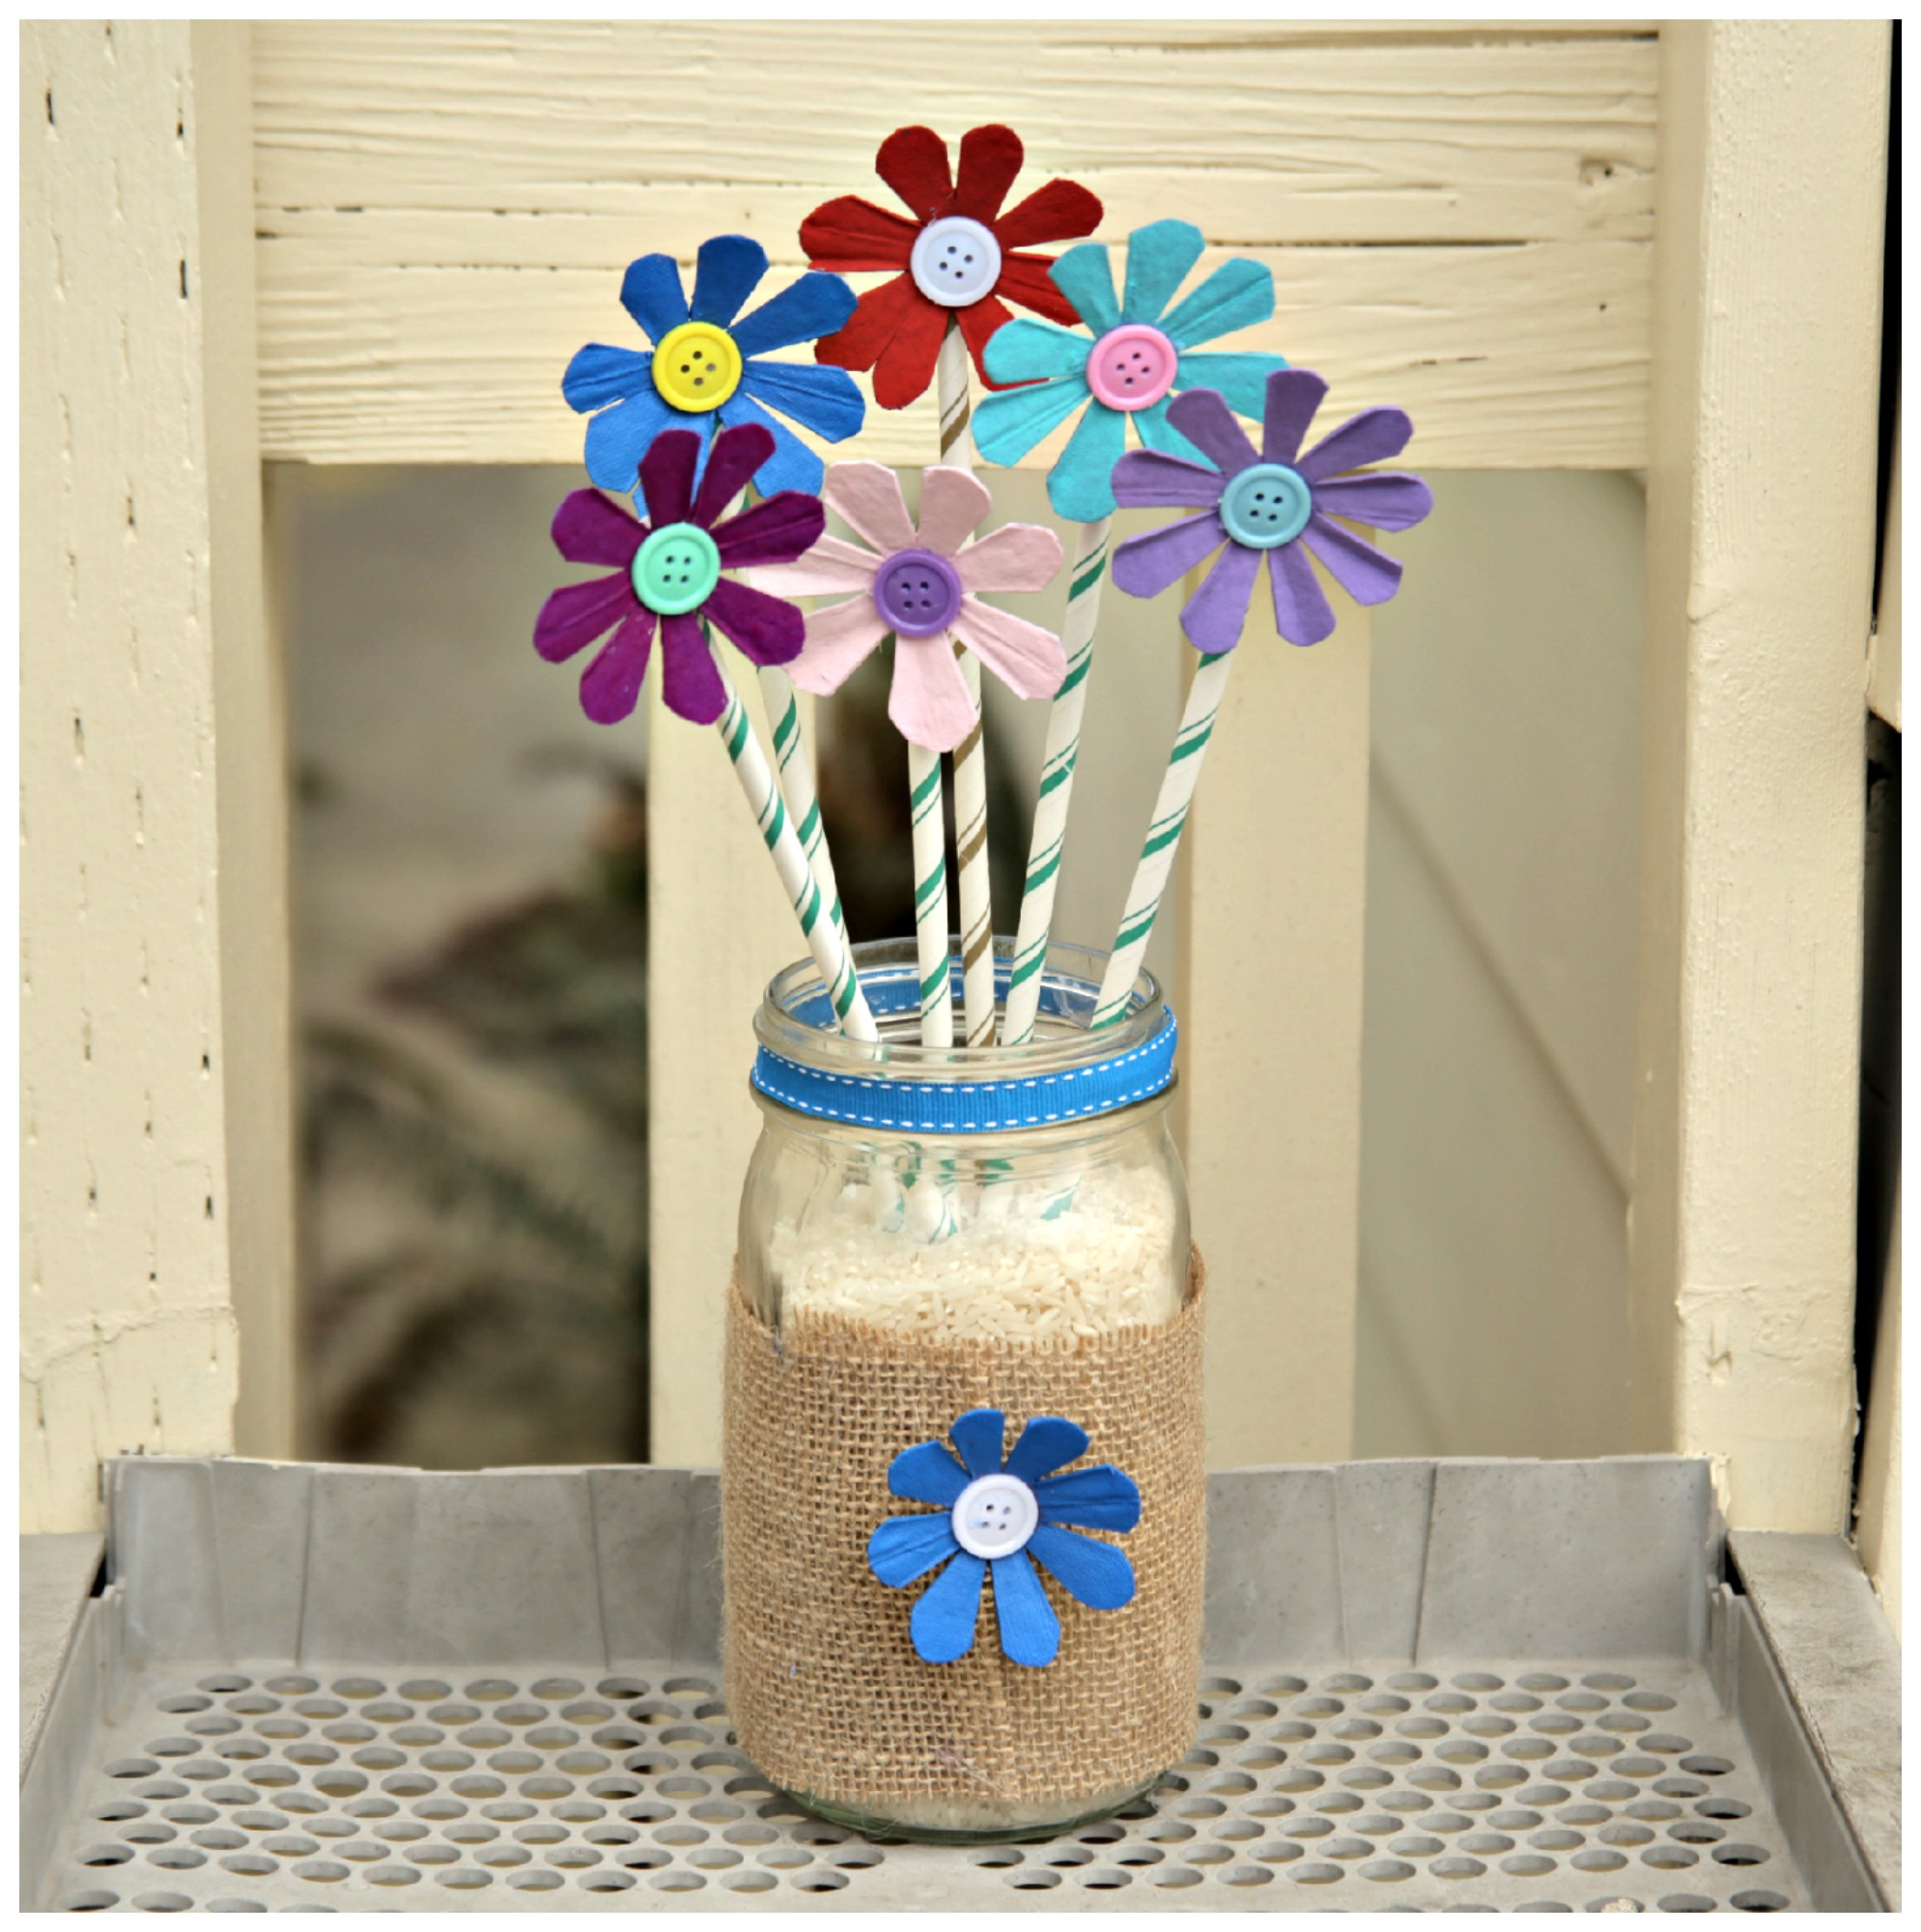 6 earth day crafts from recycled materials kix cereal for Easy recycled materials